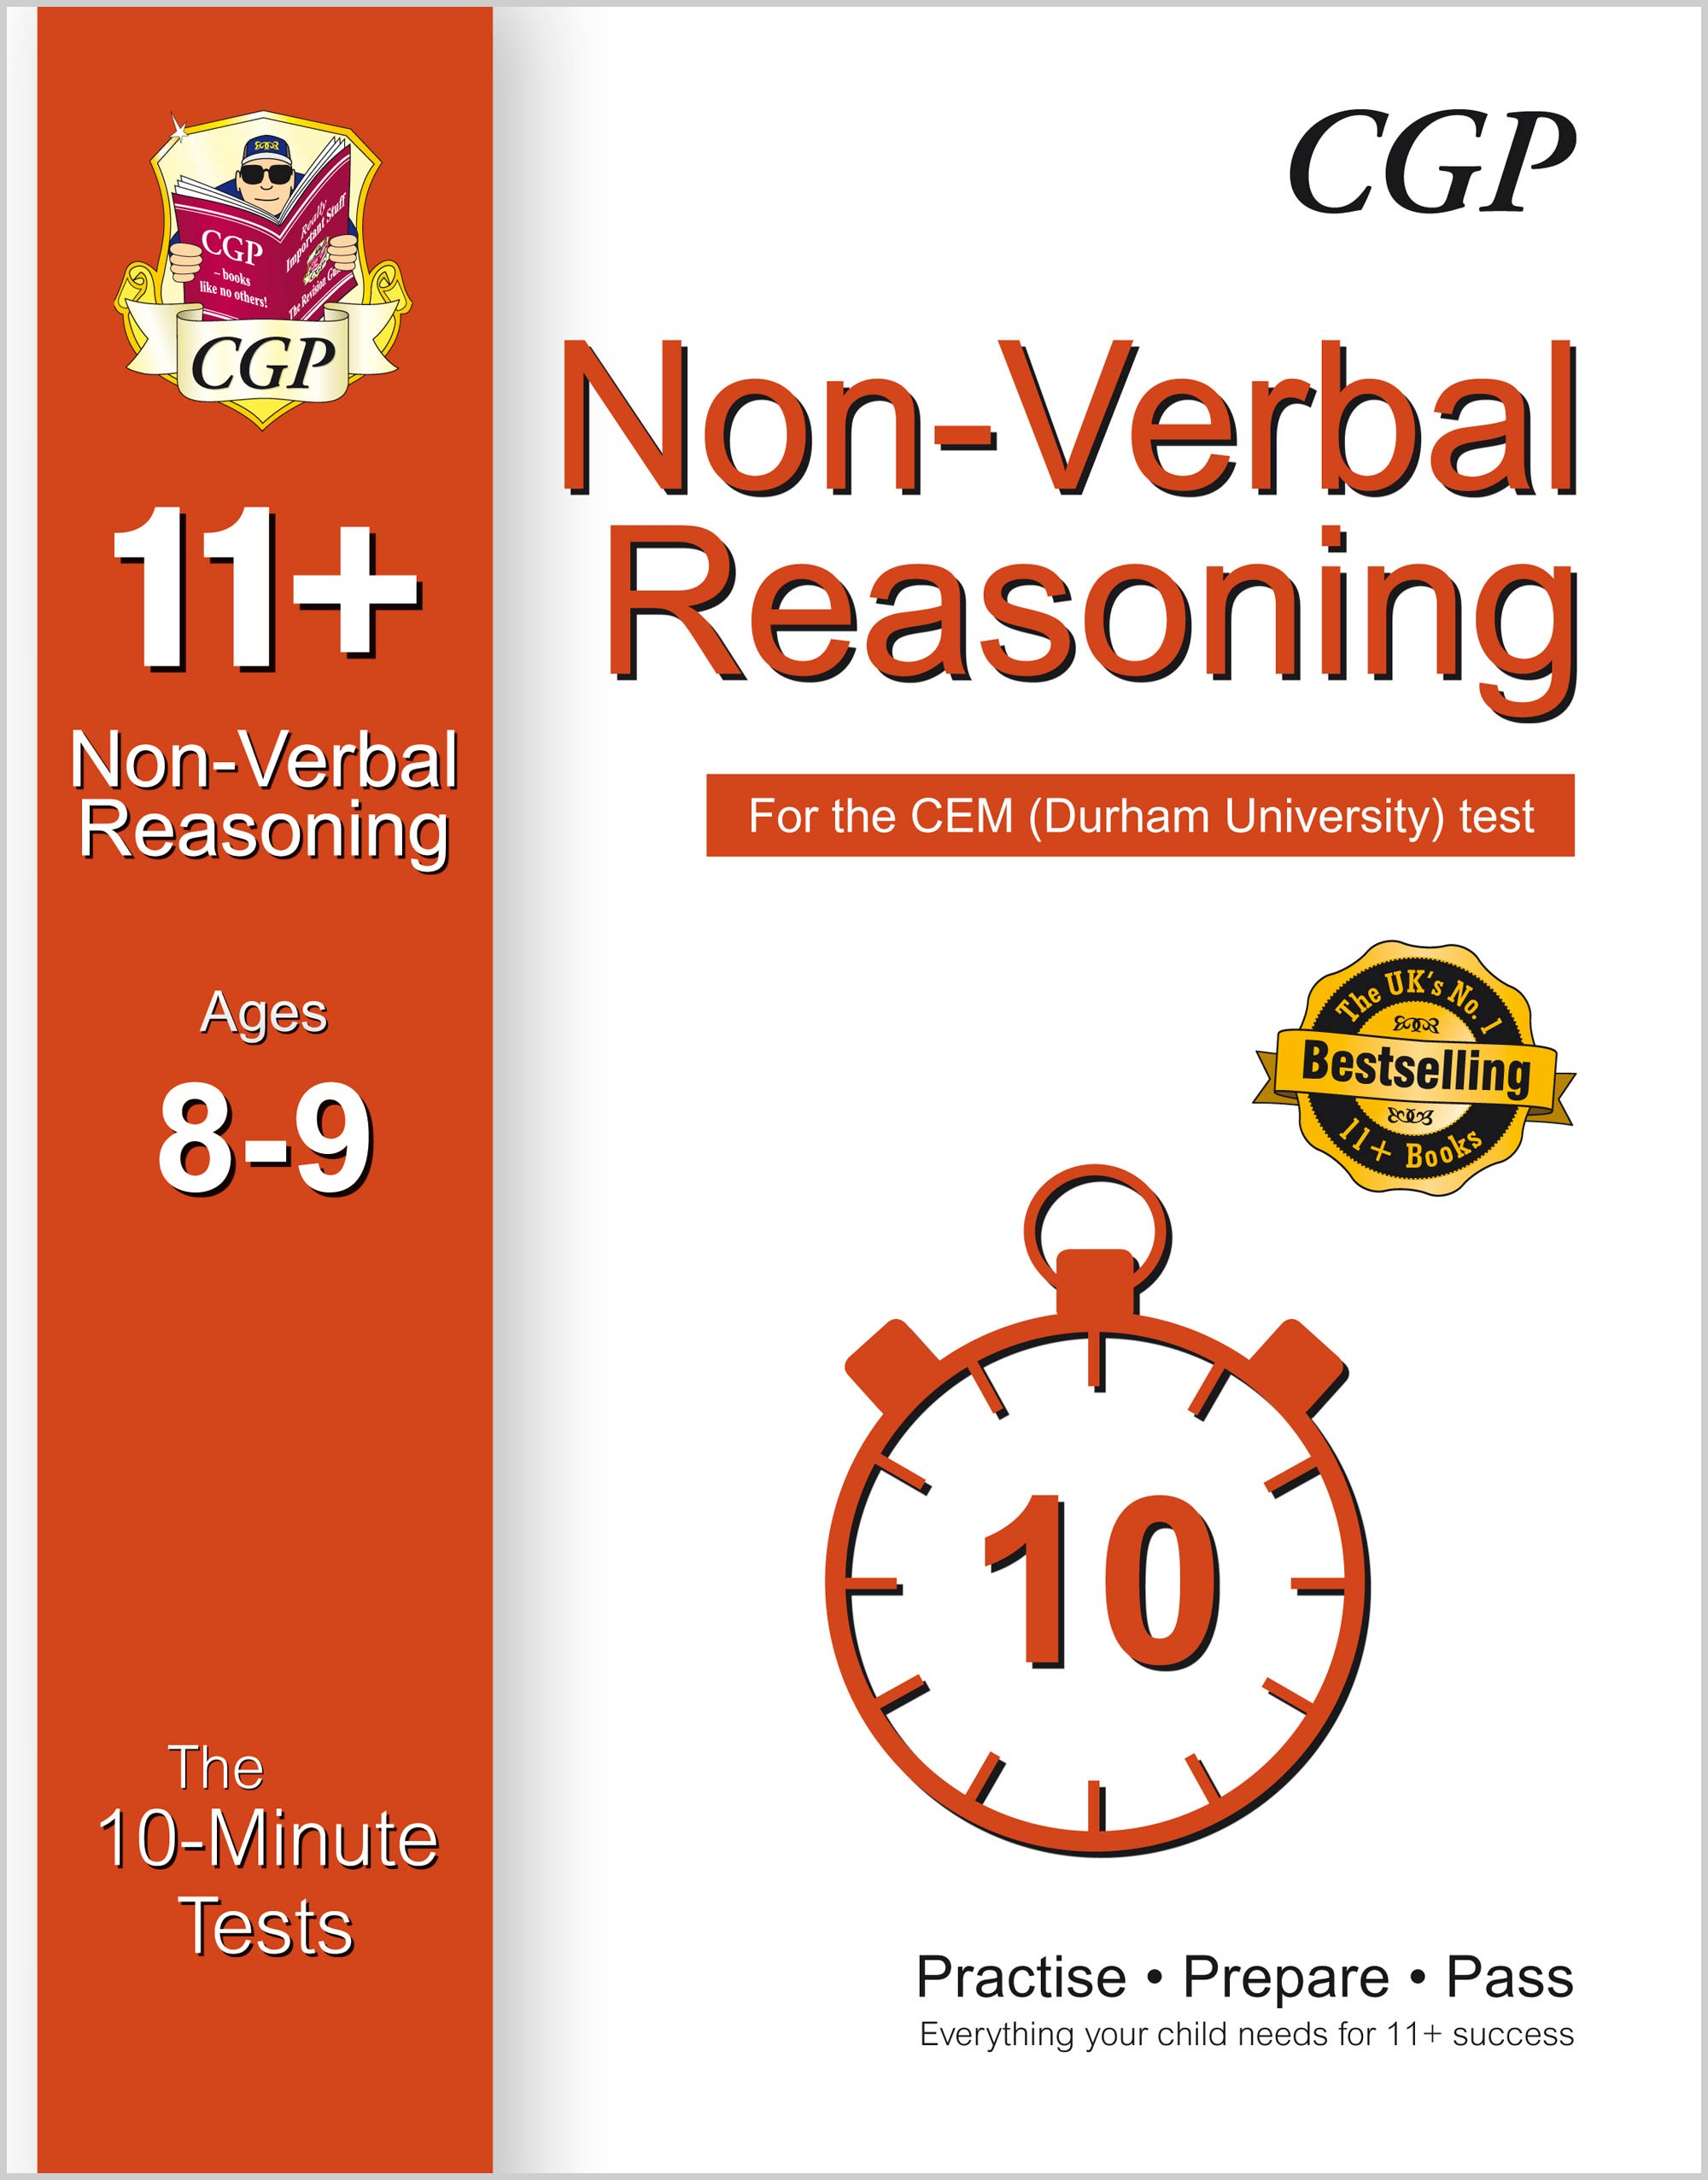 N4XPDE1 - 10-Minute Tests for 11+ Non-Verbal Reasoning Ages 8-9 - CEM Test